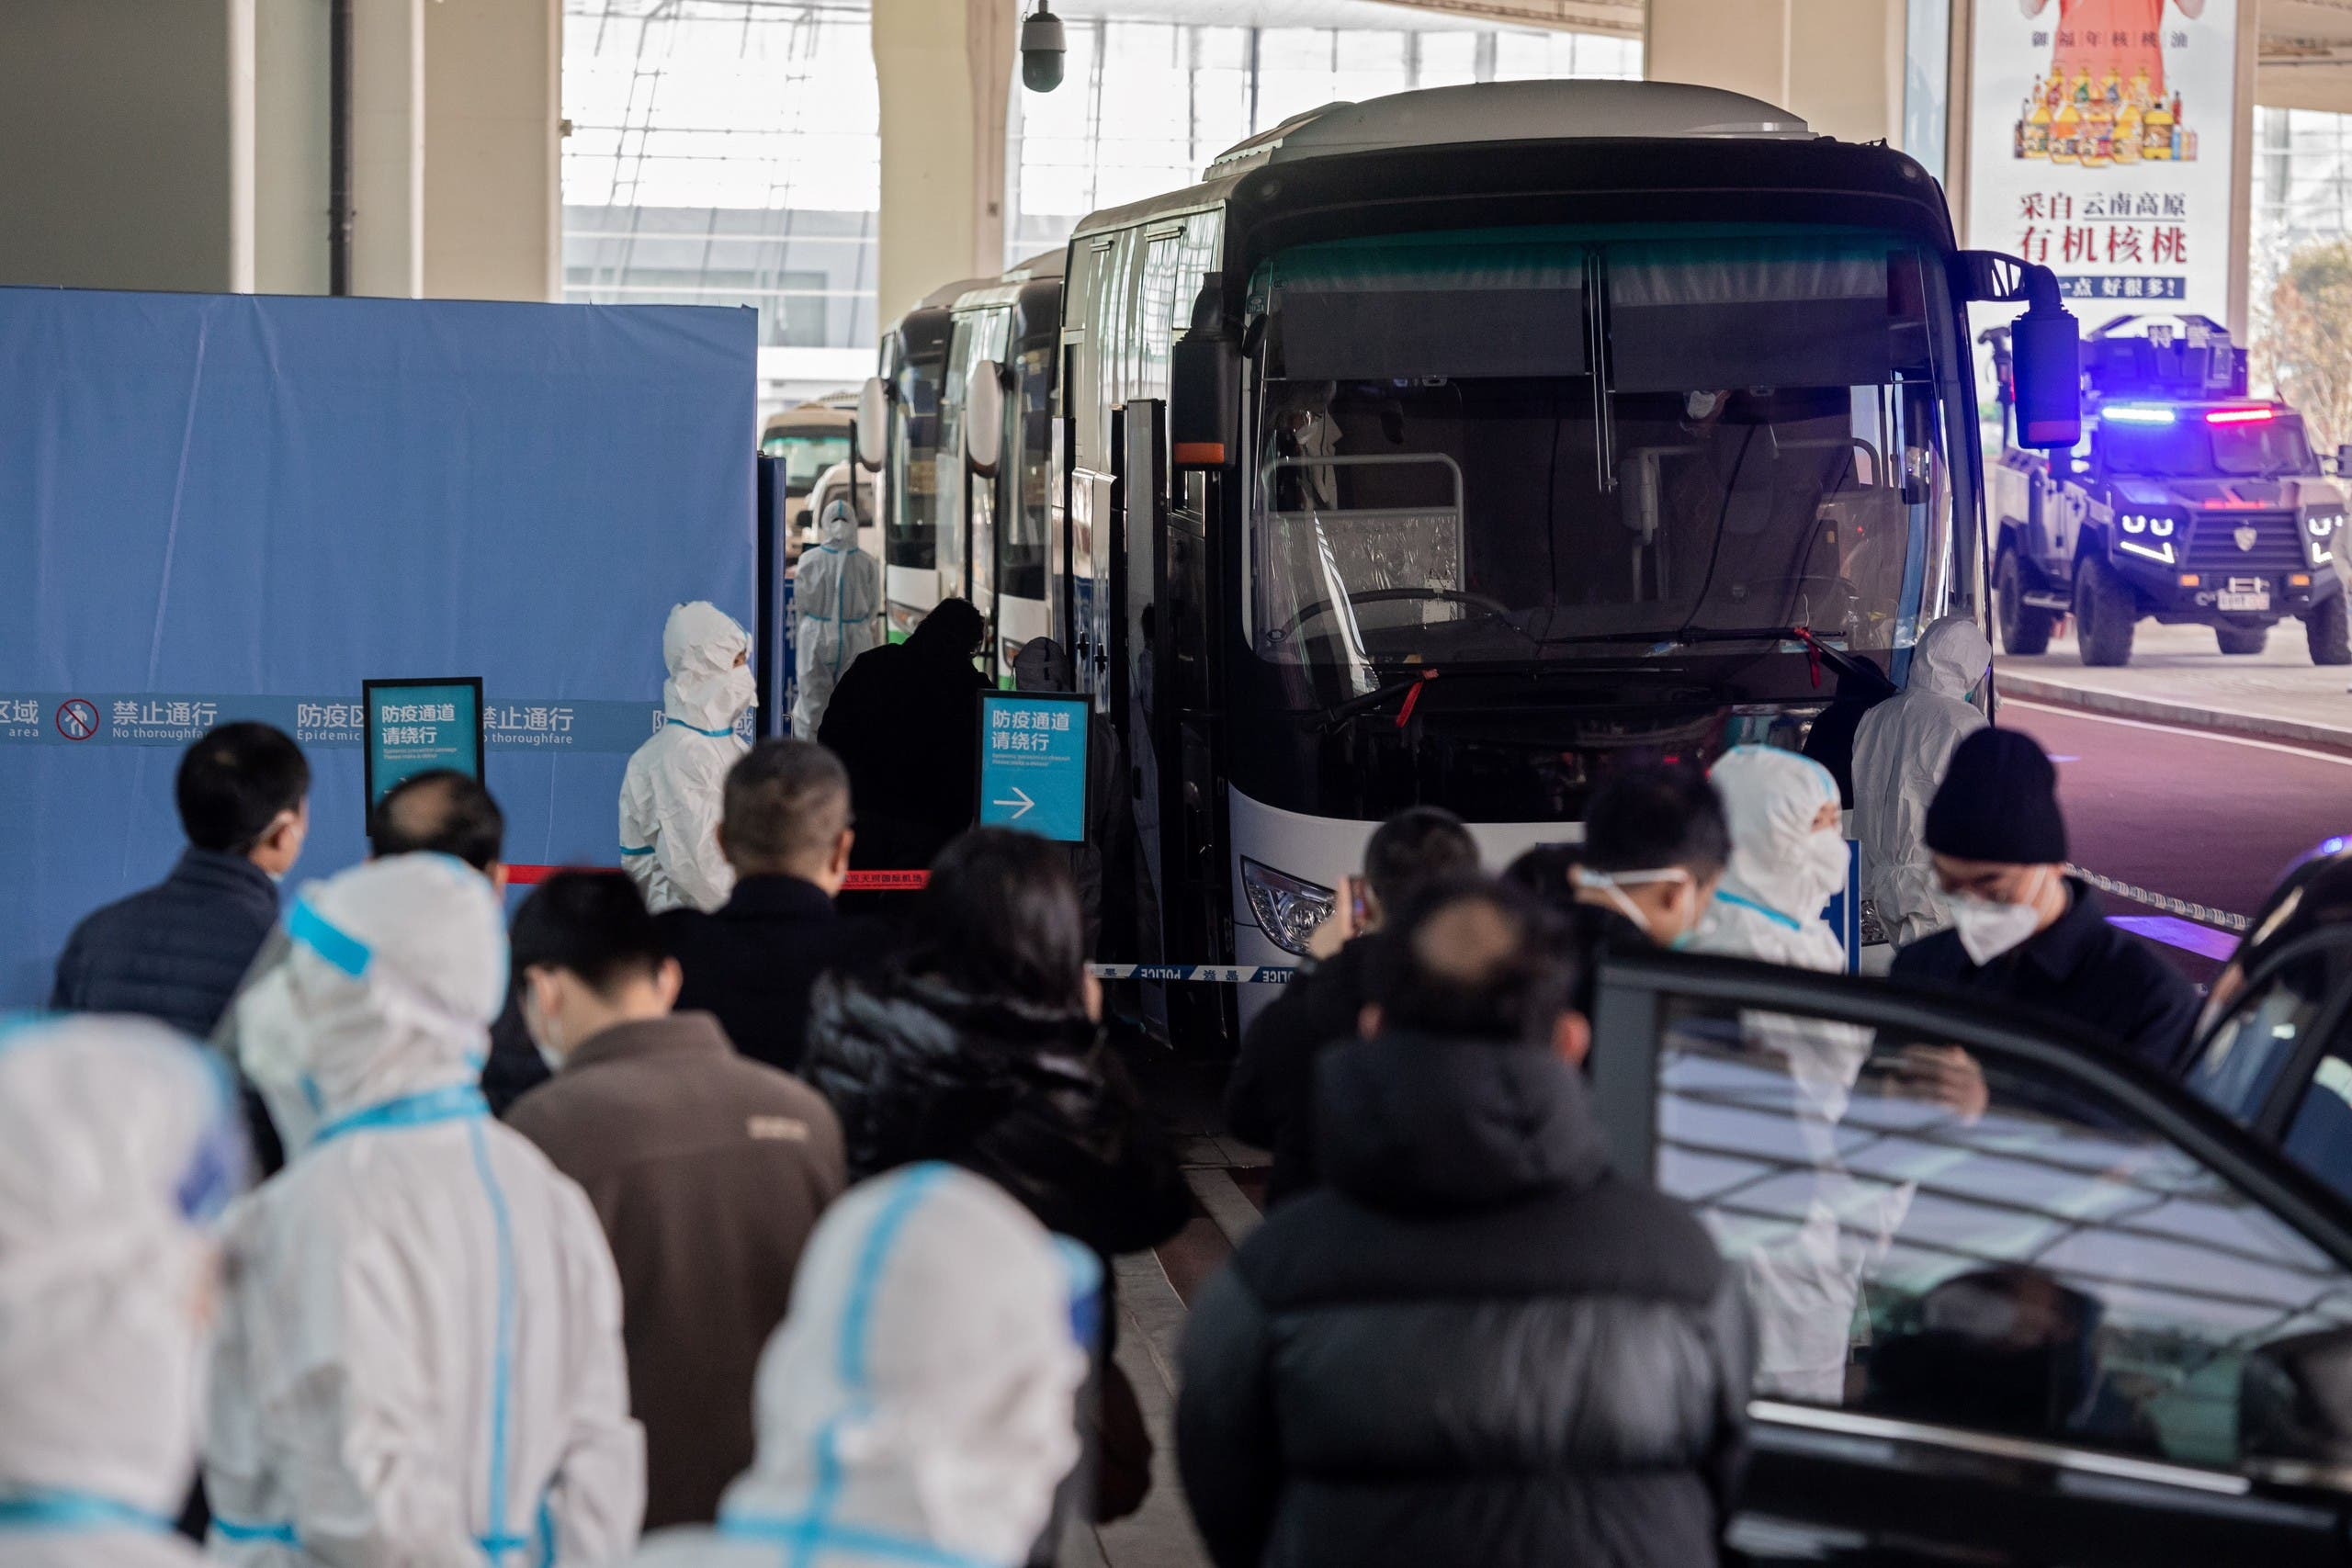 Members of the World Health Organization (WHO) team investigating the origins of the Covid-19 pandemic board a bus following their arrival at Wuhan. (AFP)